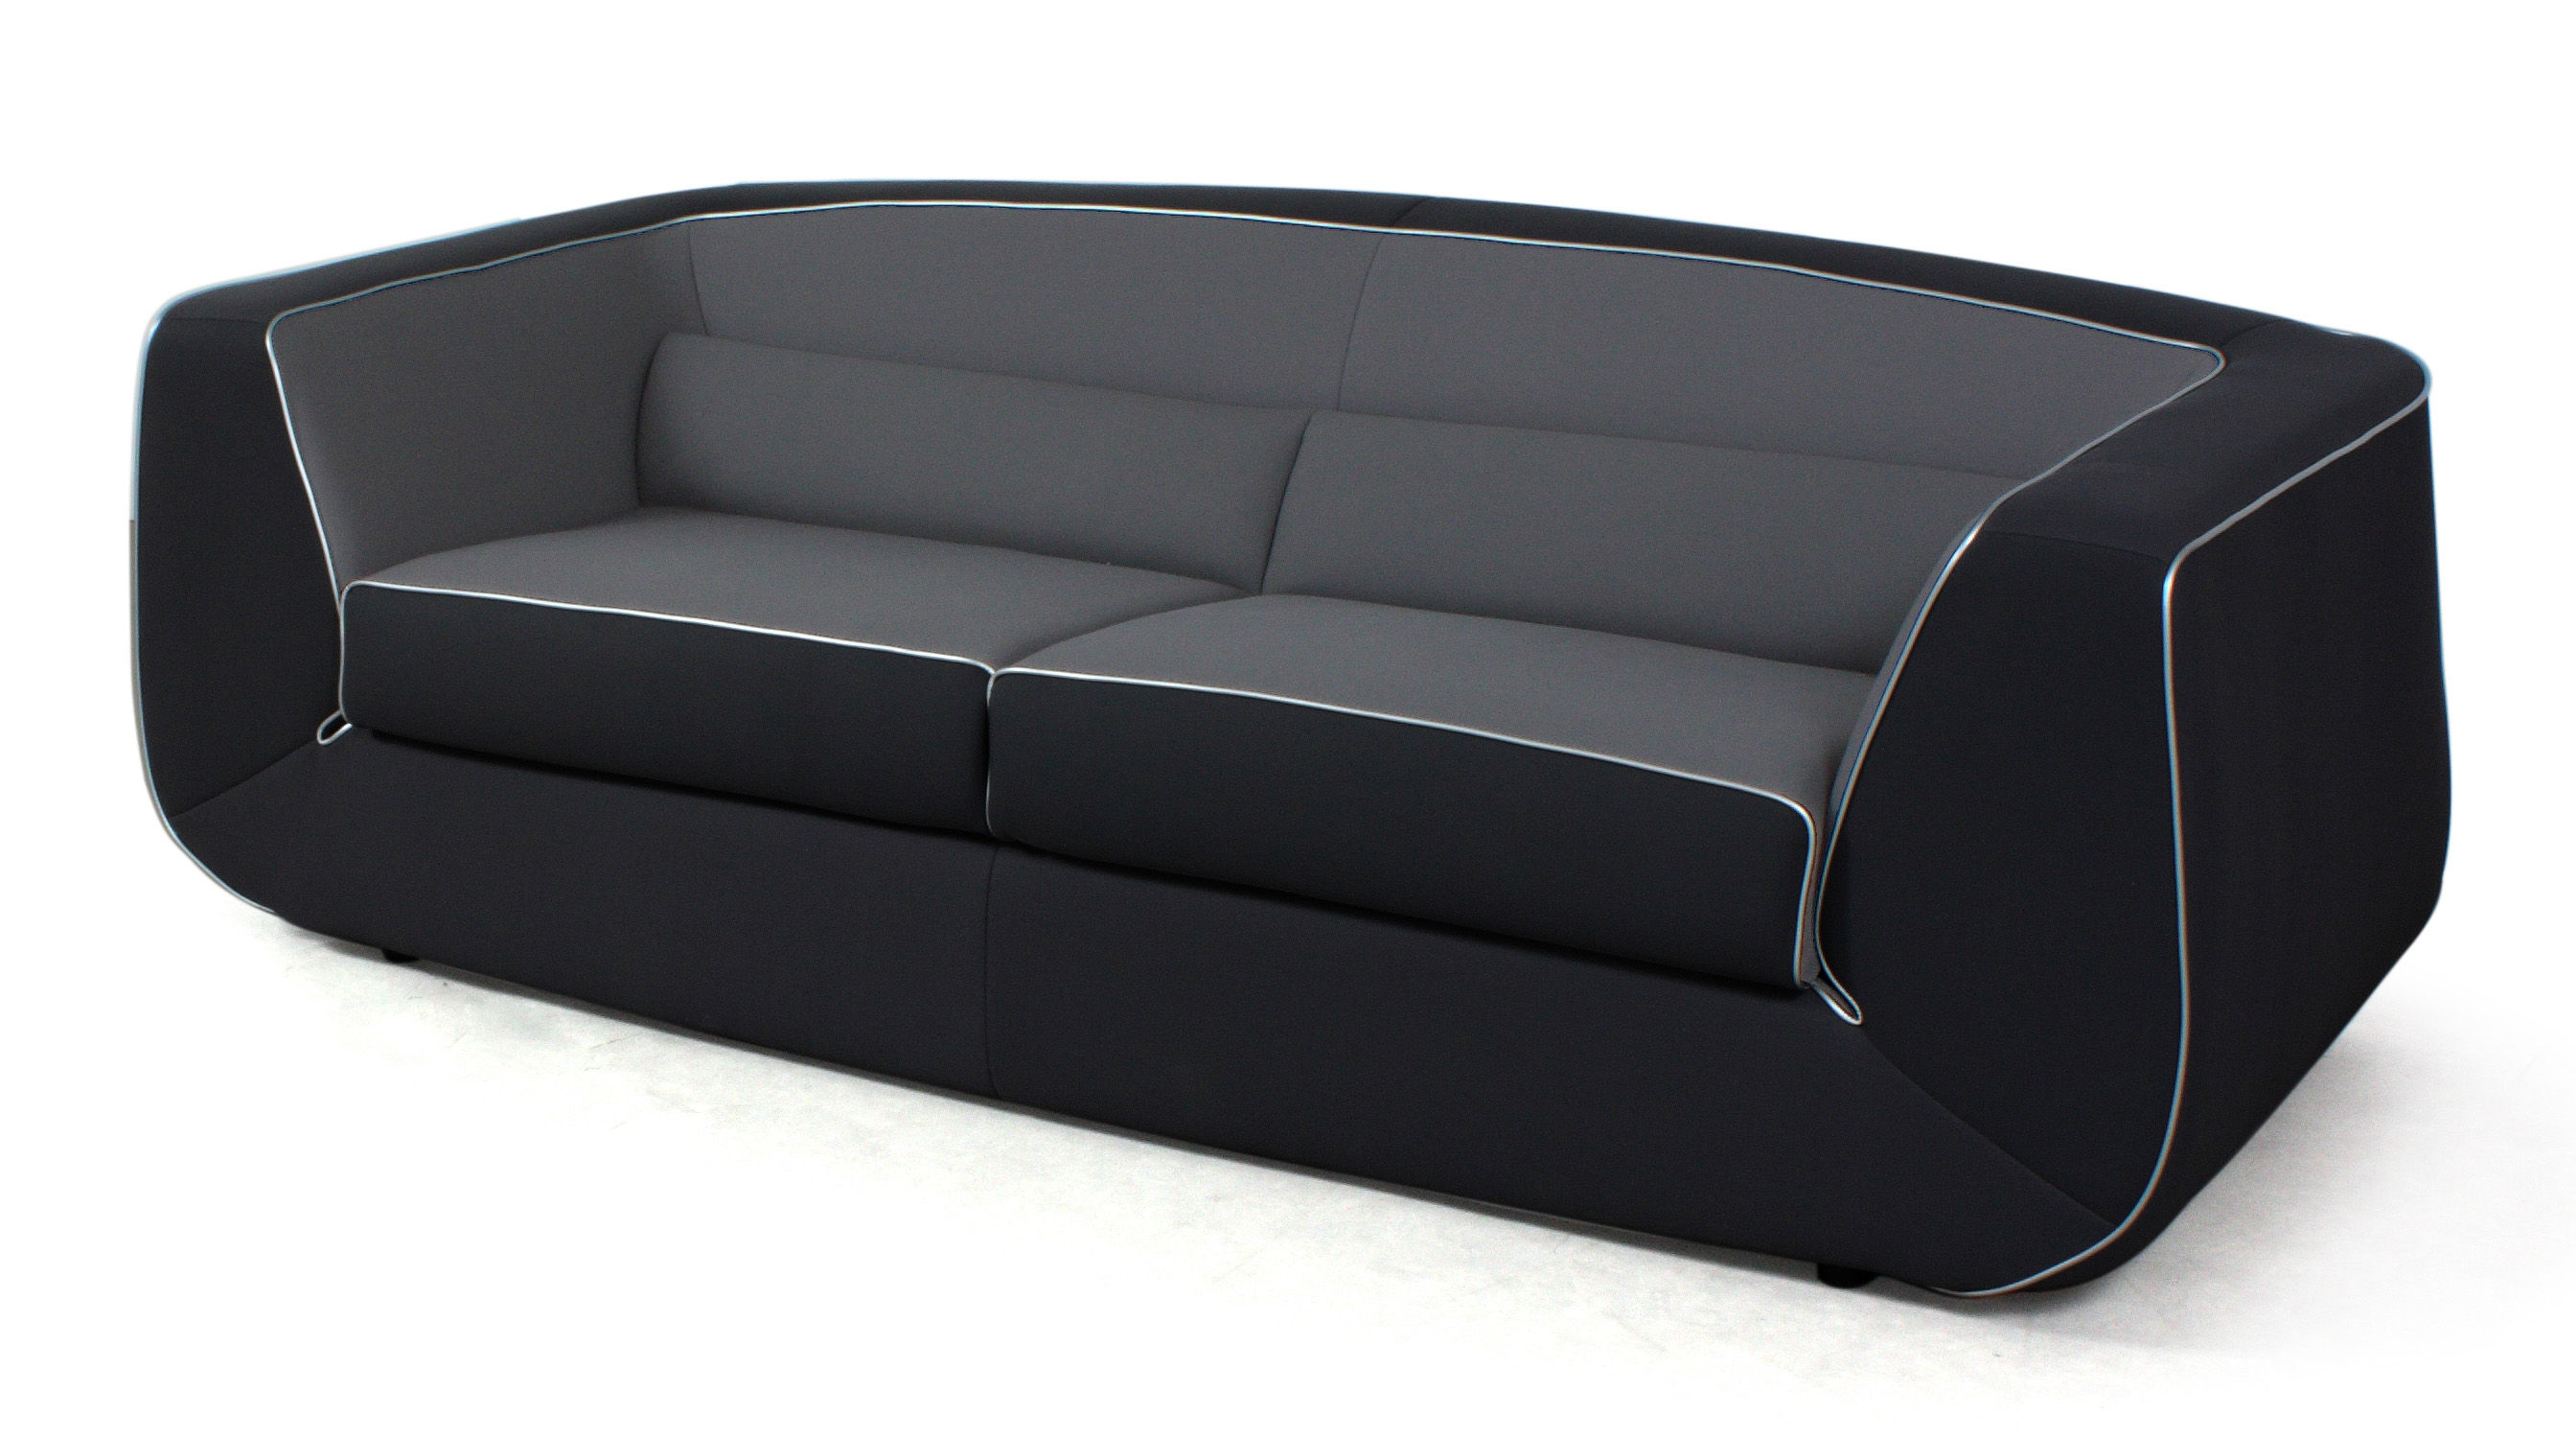 Canap convertible bump xl by ora ito 3 places l 238 cm noir gris pas - Dunlopillo canape convertible ...